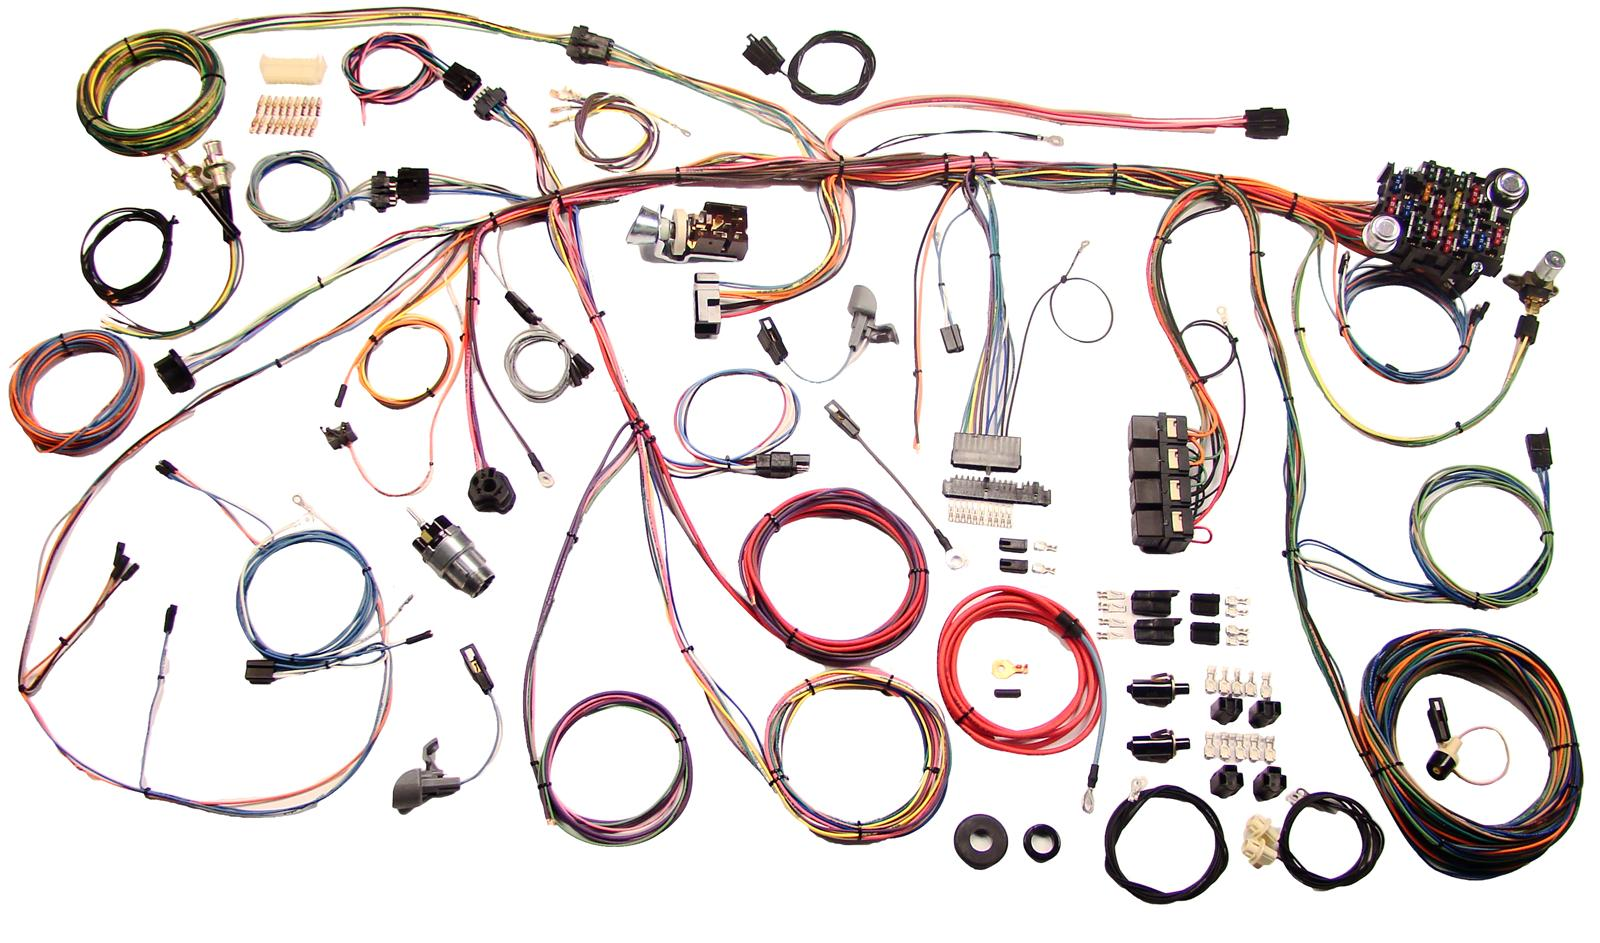 hight resolution of american autowire classic update series wiring harness kits 510177 free shipping on orders over 99 at summit racing